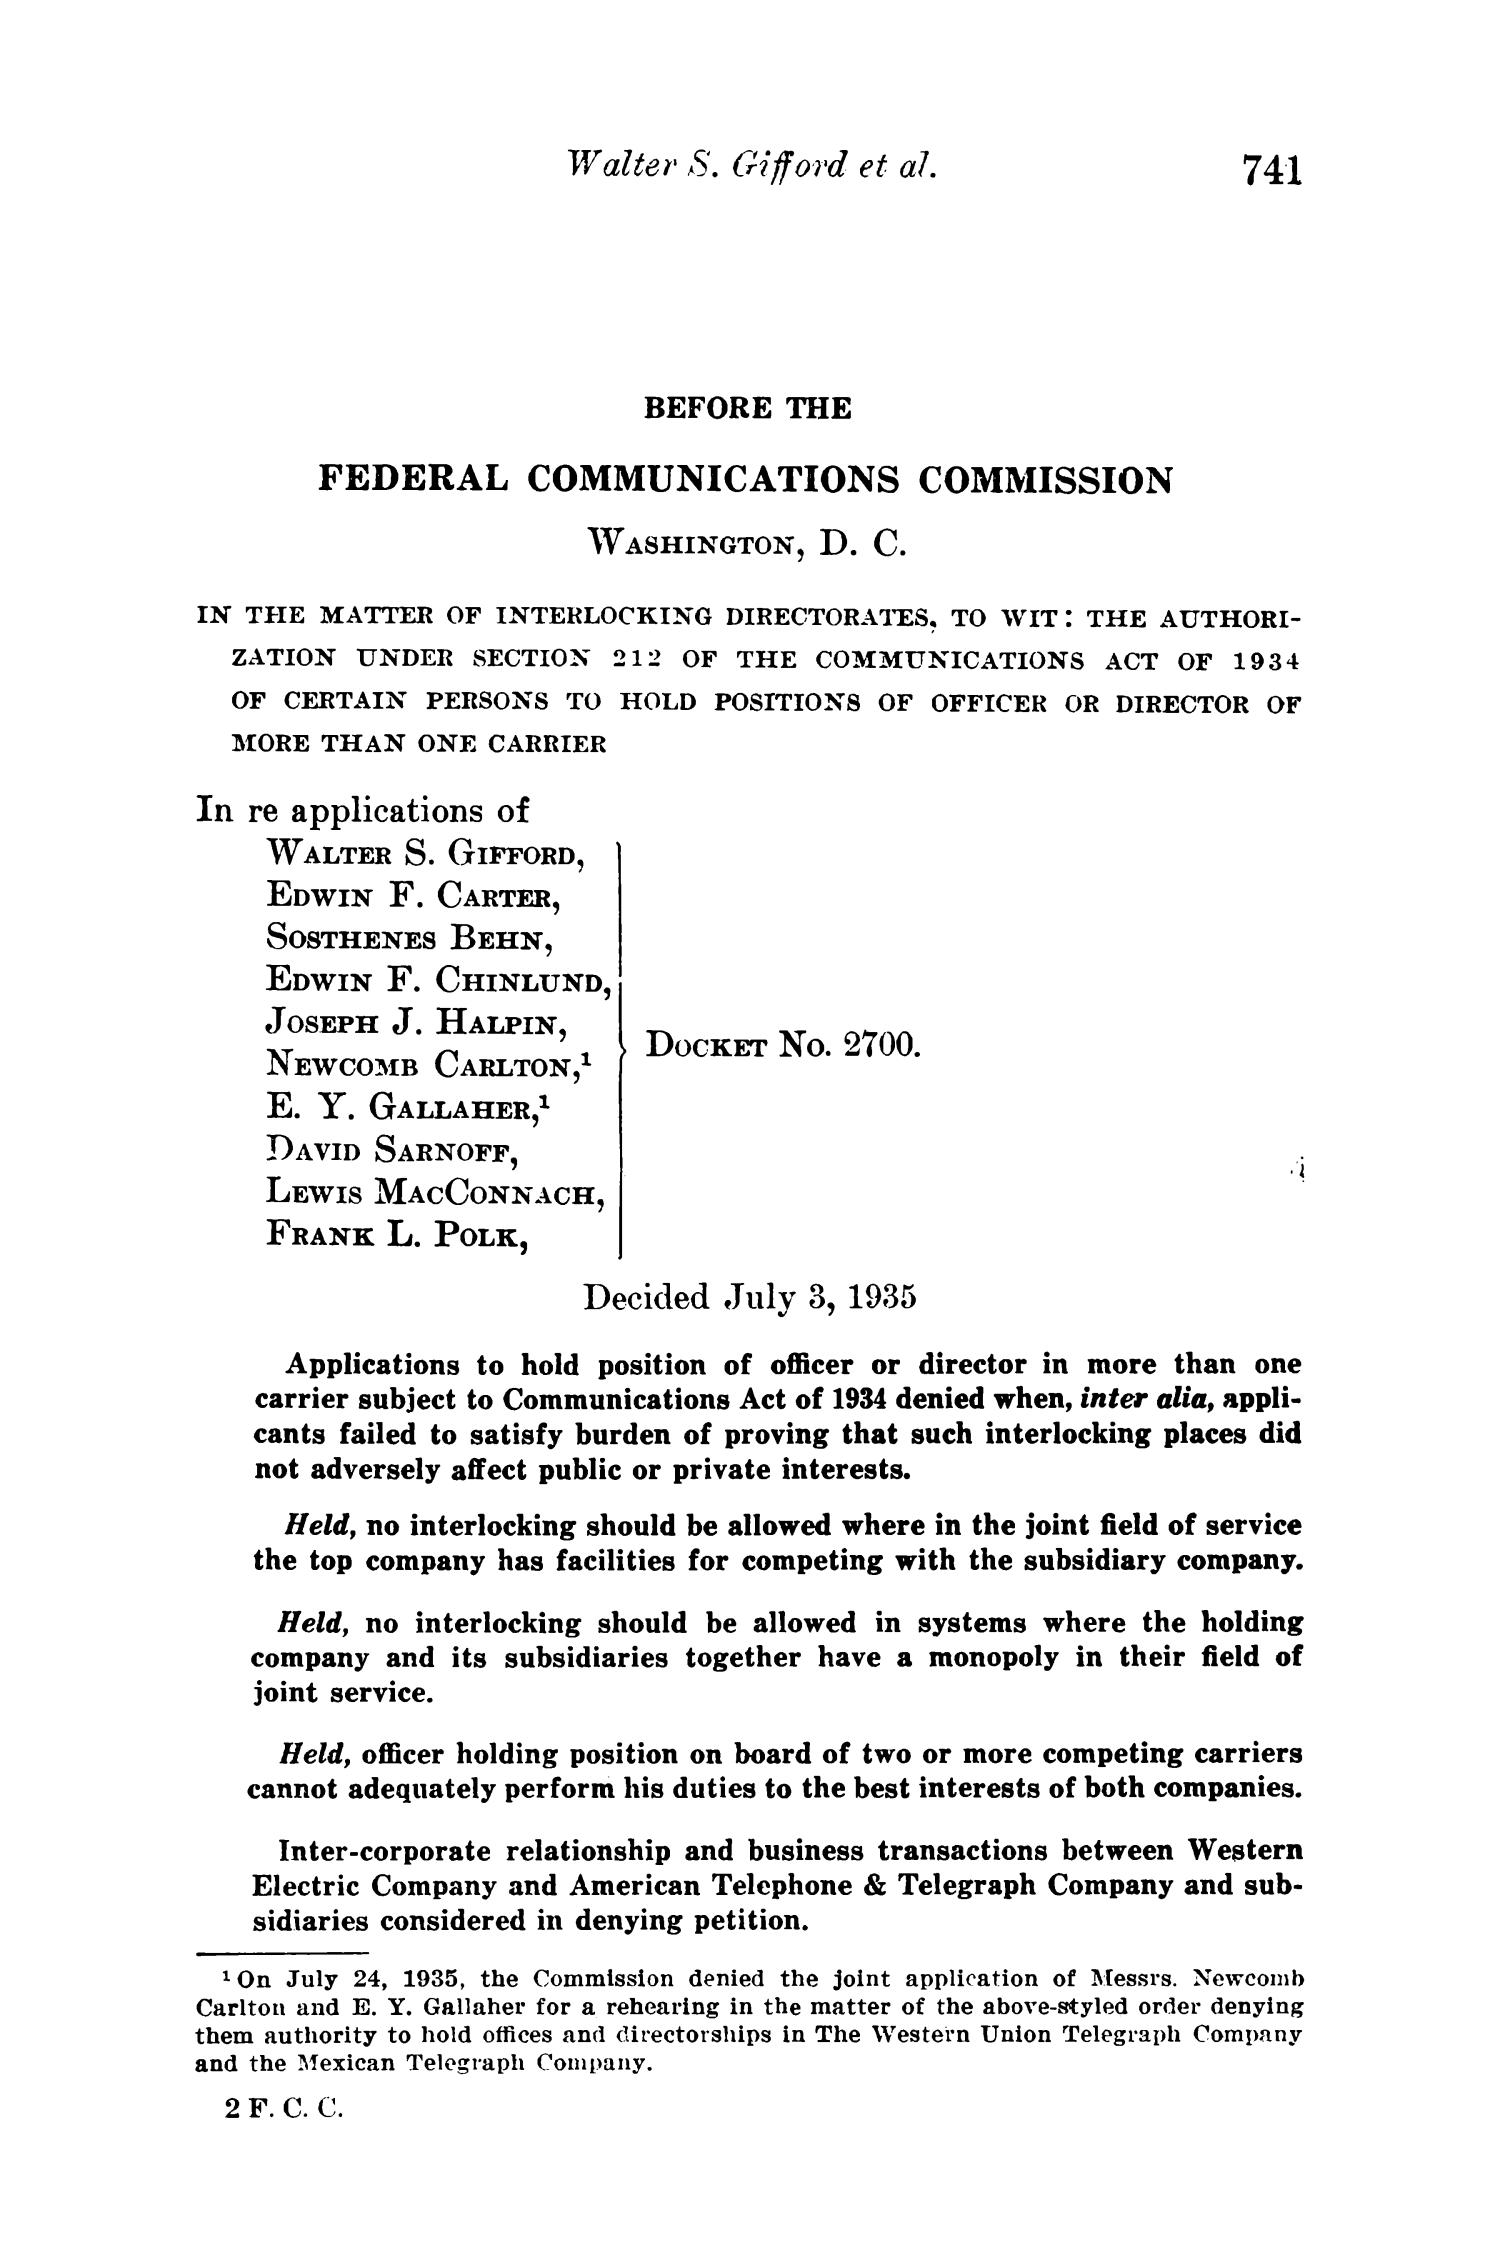 FCC Reports, Volume 2, July 1, 1935 to June 30, 1936 - Page 741